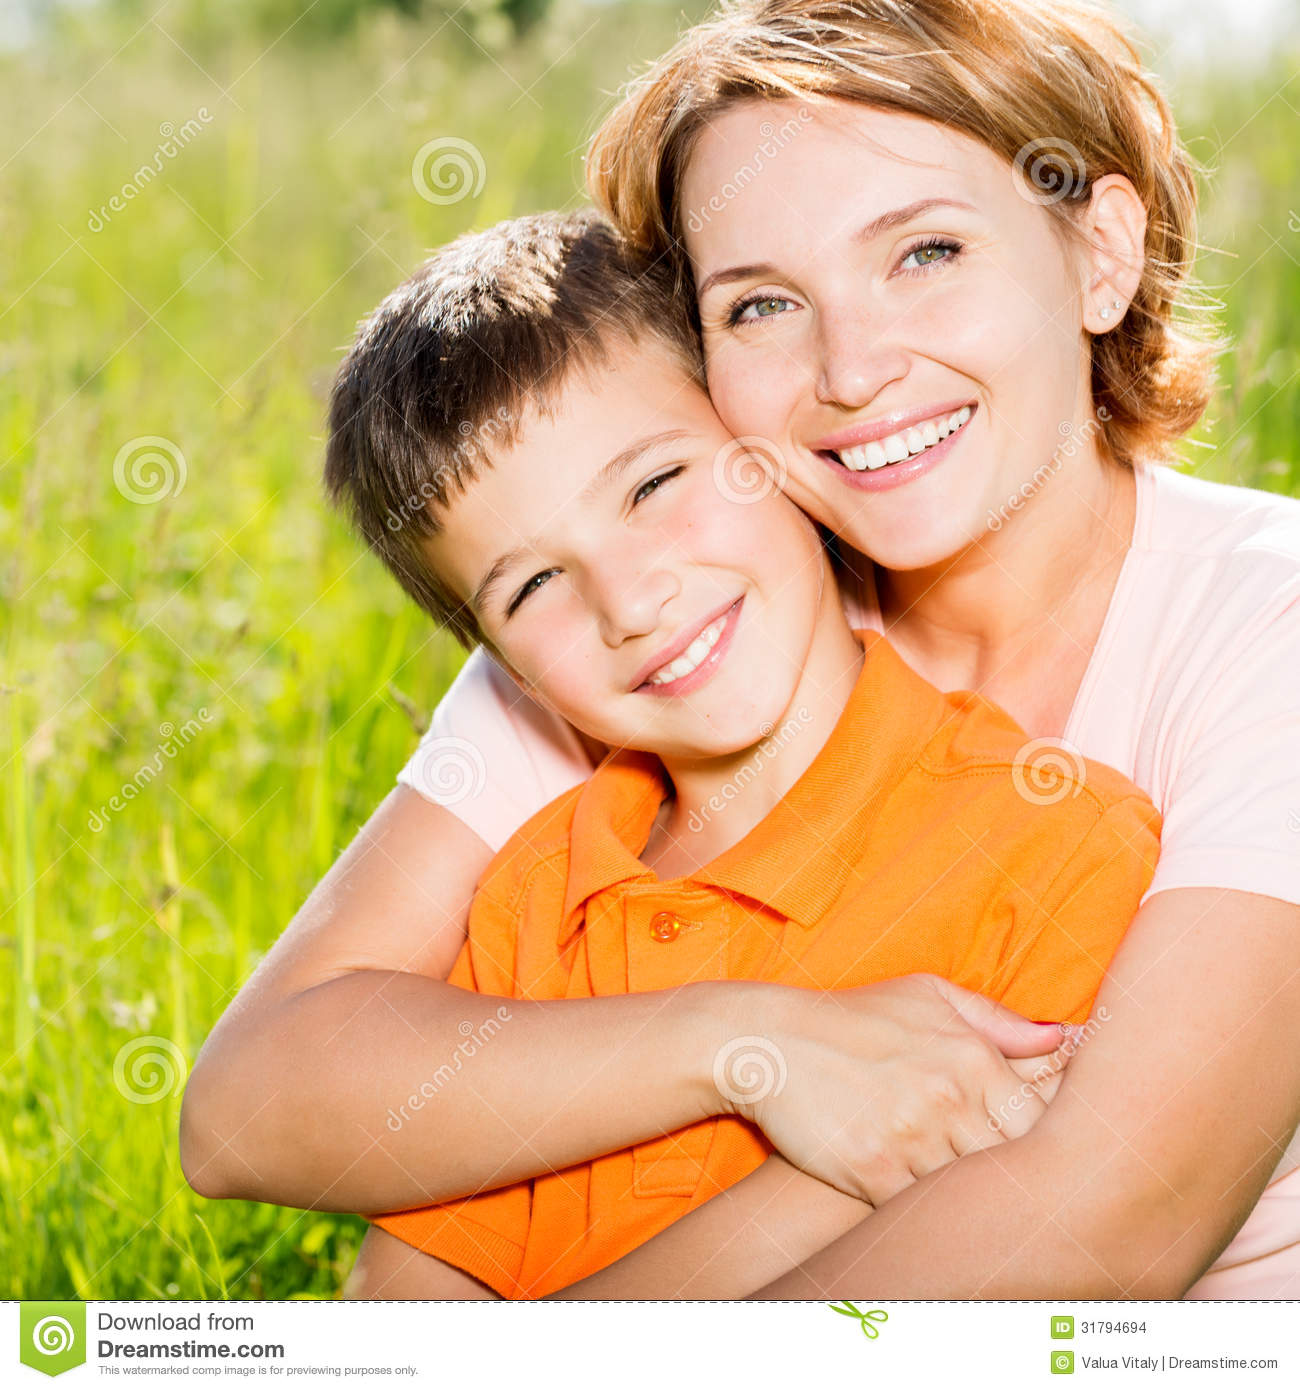 happy mother and son outdoor portrait stock images image 31794694. Black Bedroom Furniture Sets. Home Design Ideas